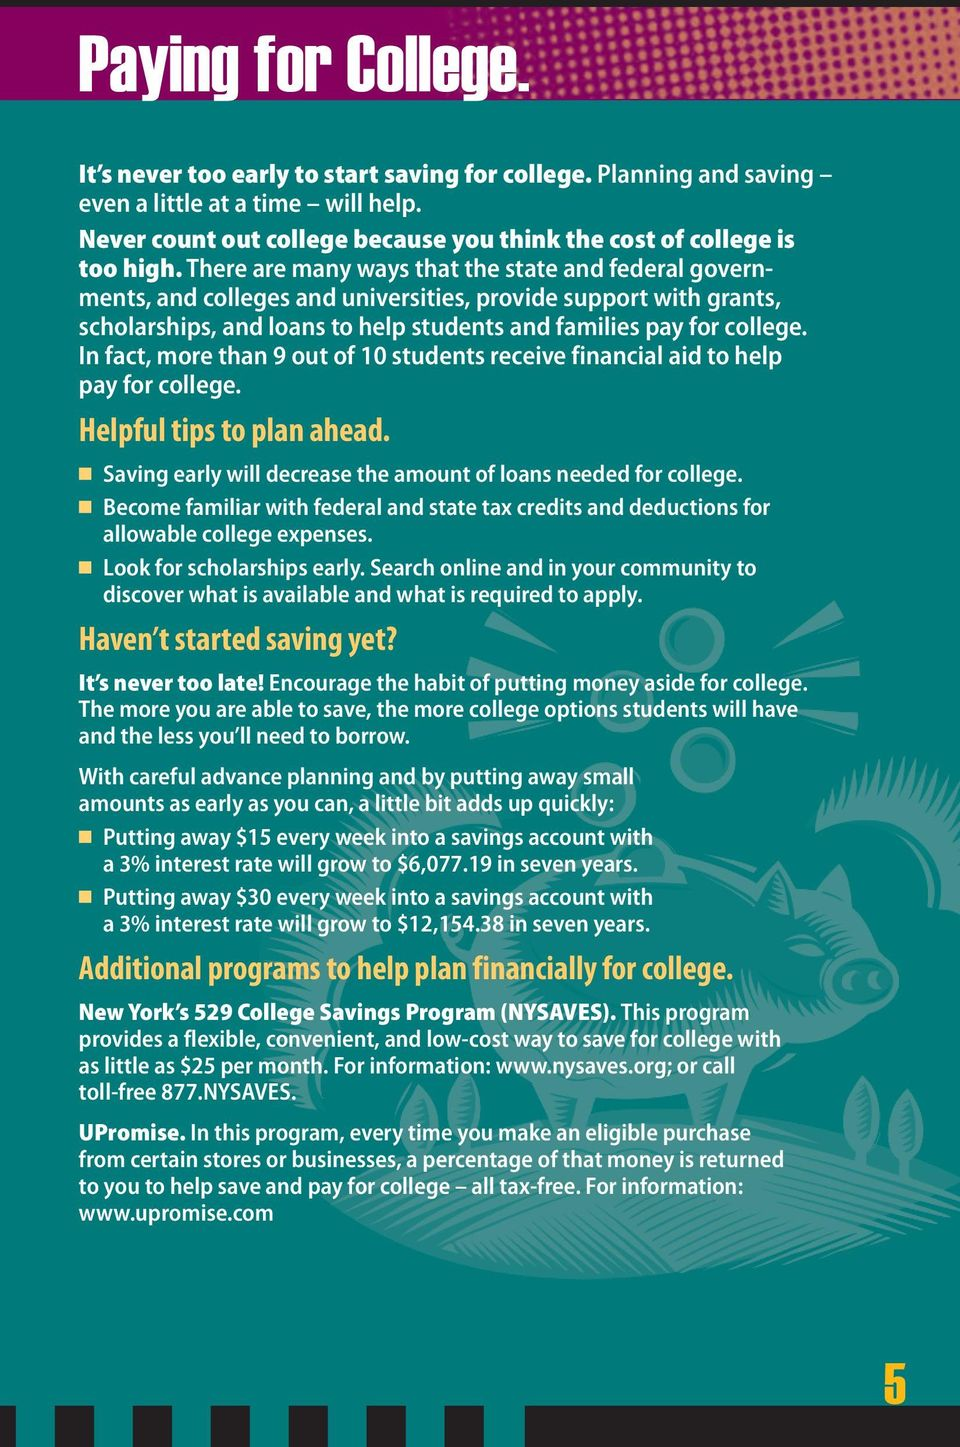 In fact, more than 9 out of 10 students receive financial aid to help pay for college. Helpful tips to plan ahead. Saving early will decrease the amount of loans needed for college.